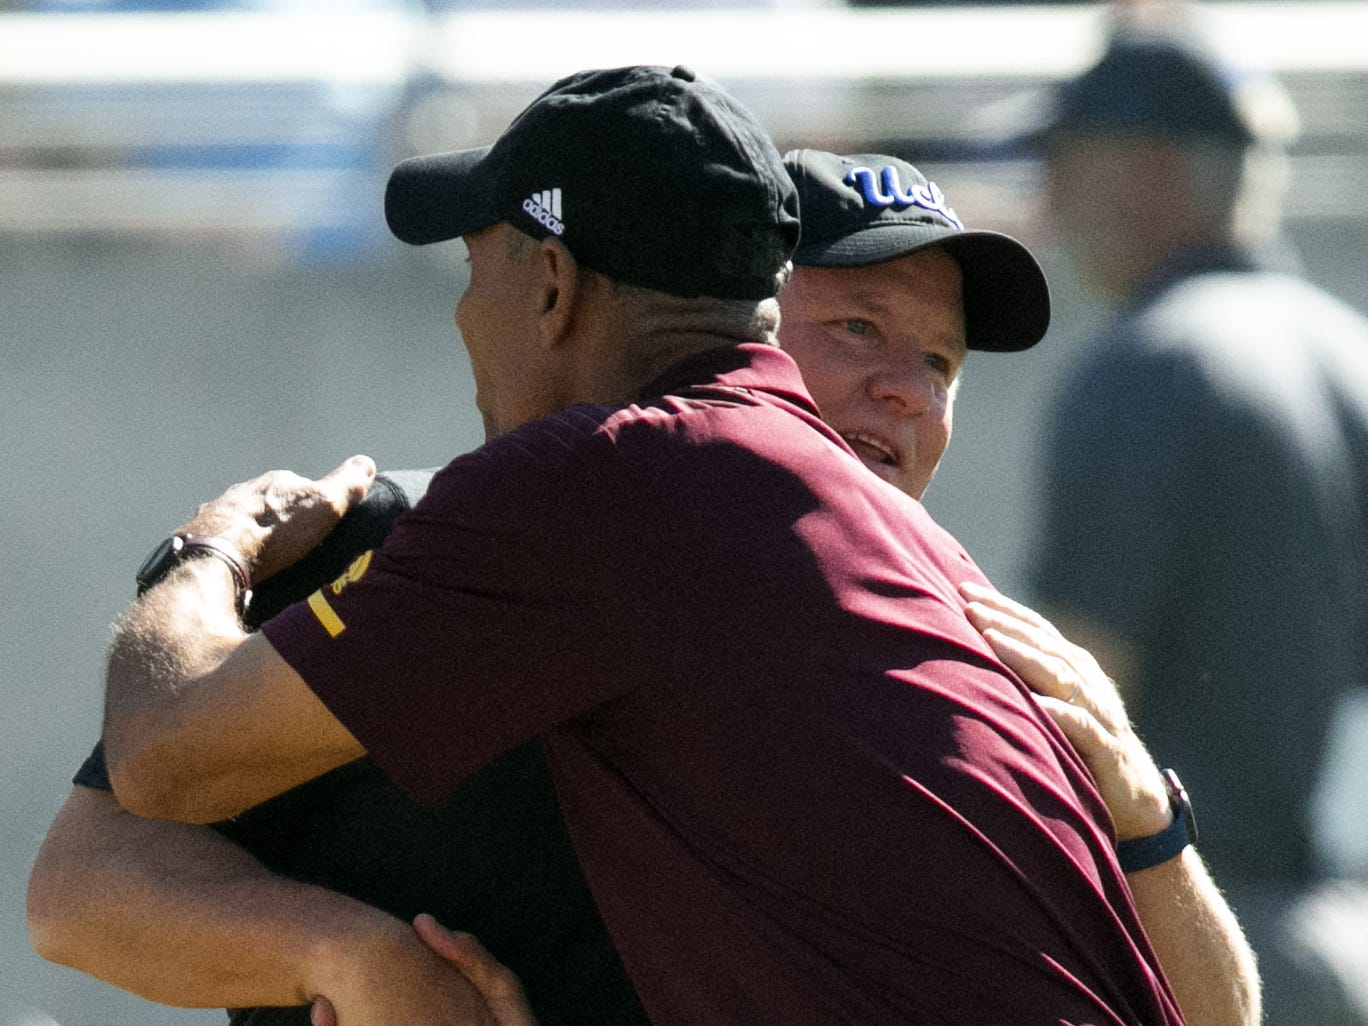 ASU head coach Herm Edwards and Chip Kelly embrace before the PAC-12 college football game at Sun Devil Stadium in Tempe on Saturday, November 10, 2018.